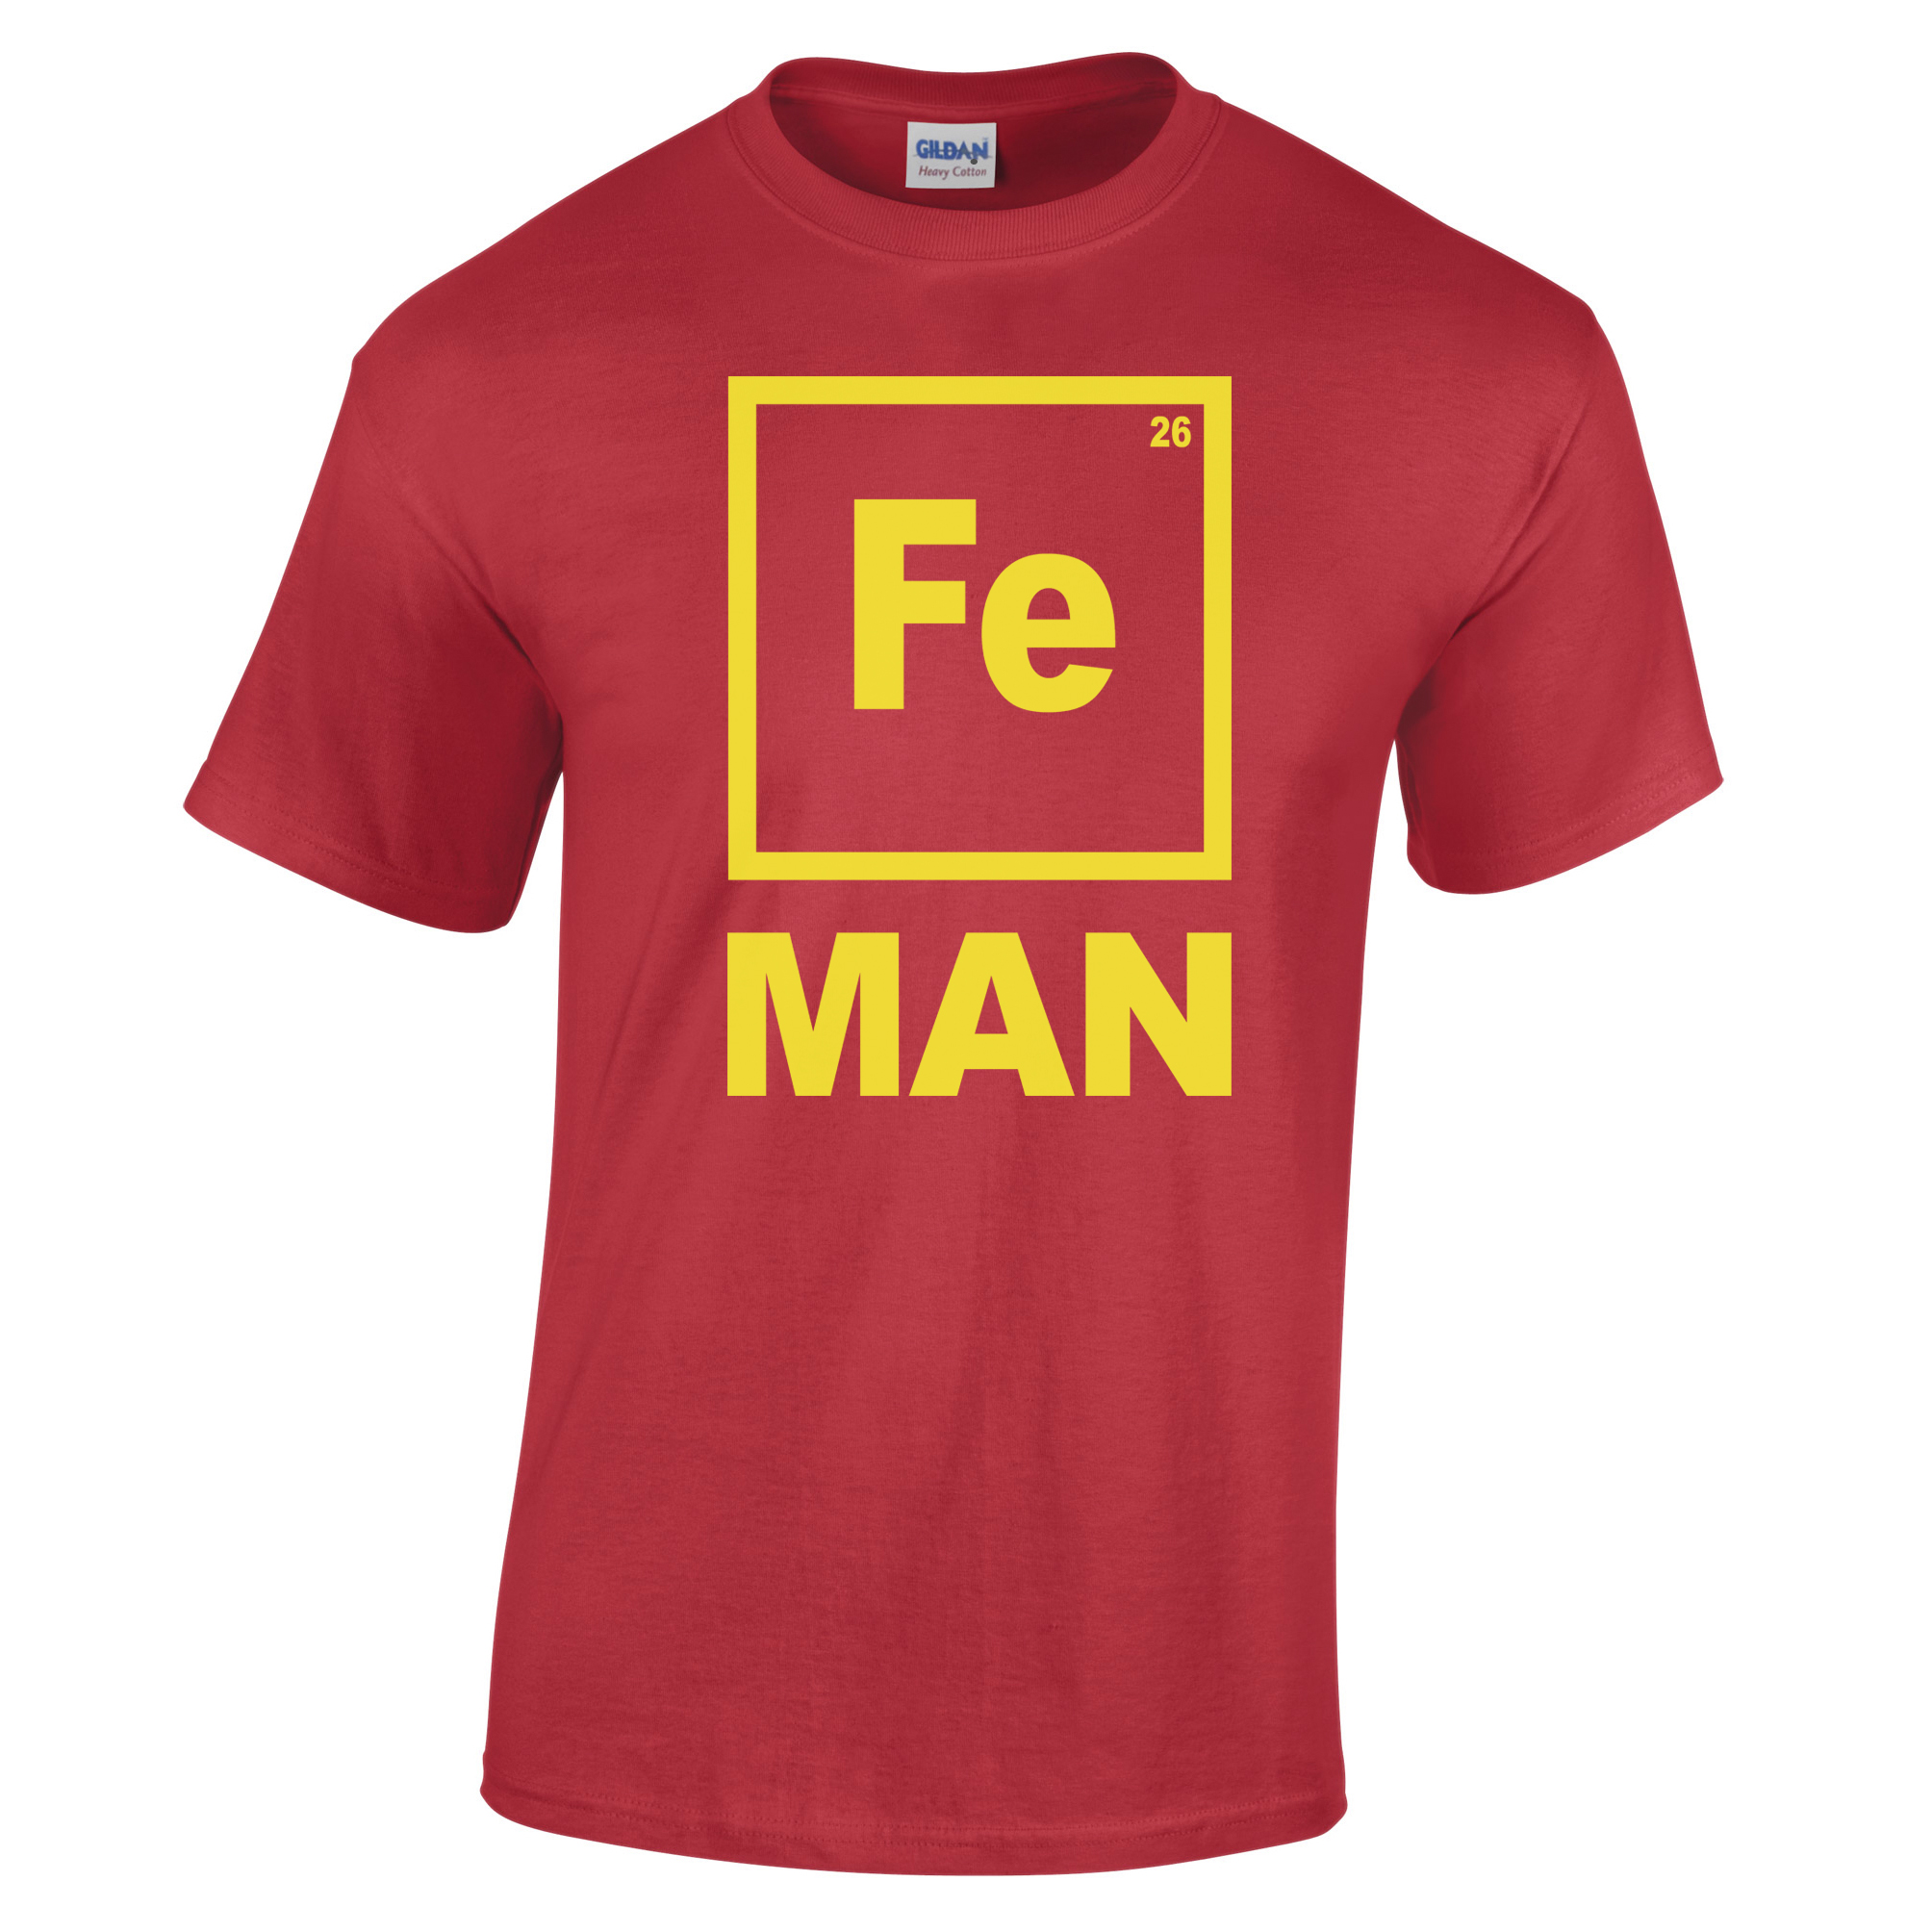 Iron man t shirt funny chemistry shirt periodic table for Iron man shirt for men